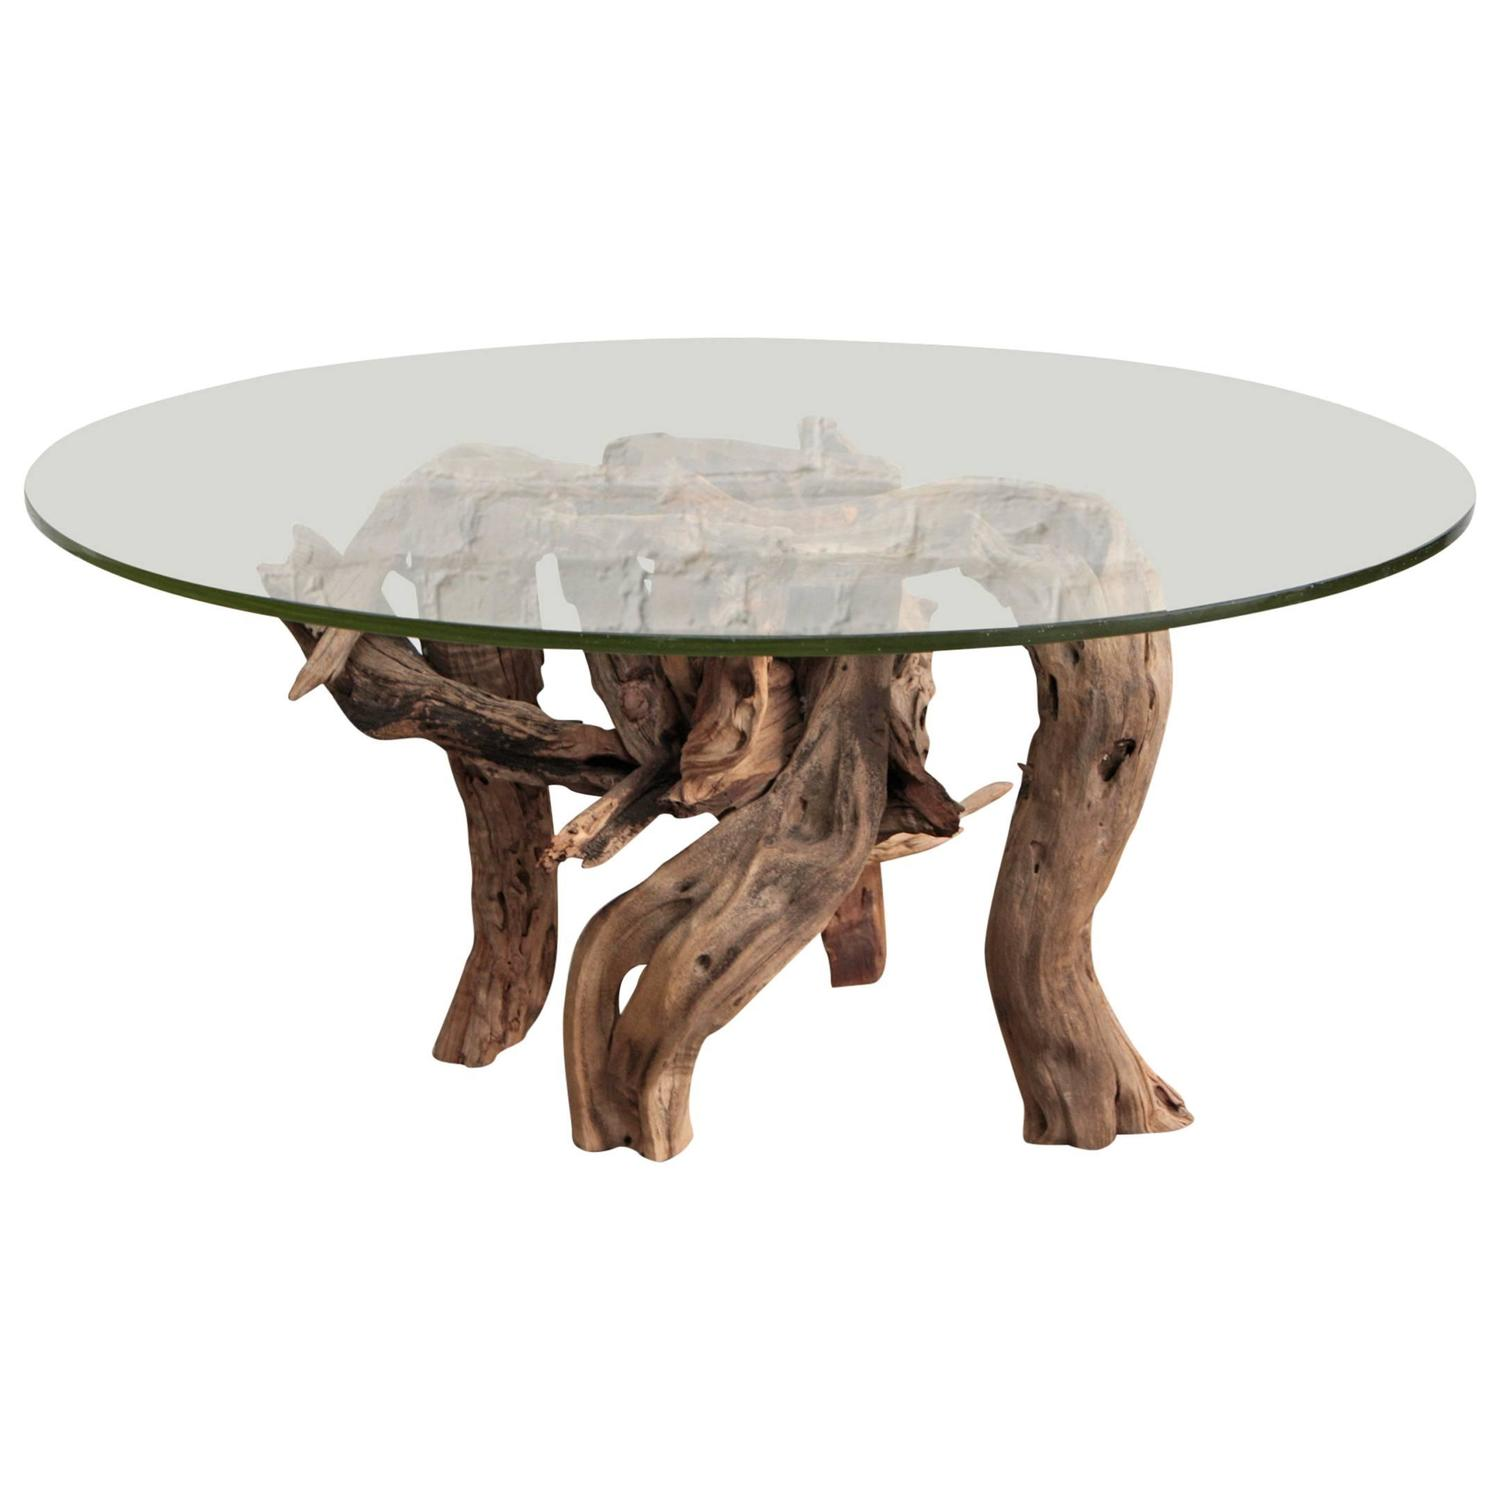 Driftwood coffee table round glass top for sale at 1stdibs for Round glass coffee table top